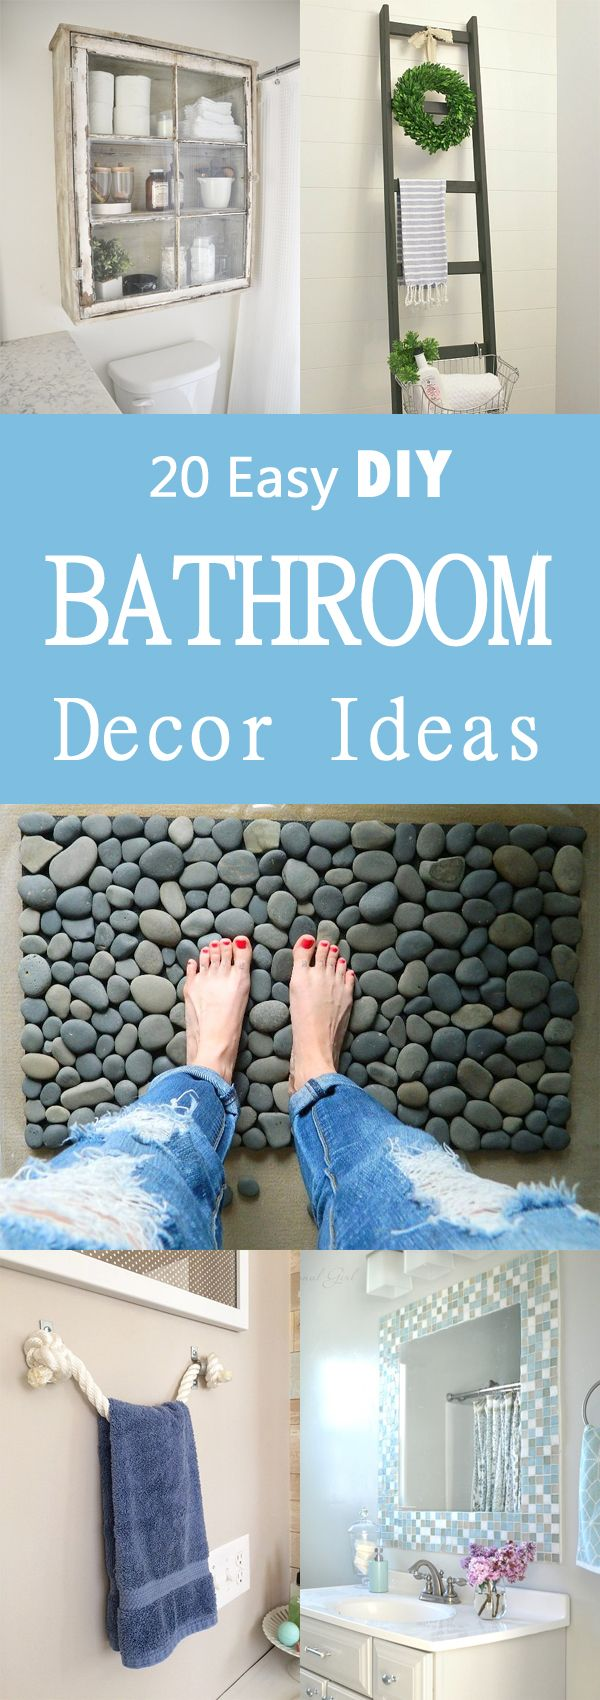 Bathroom diy decorations - 20 Easy Diy Bathroom Decor Ideas